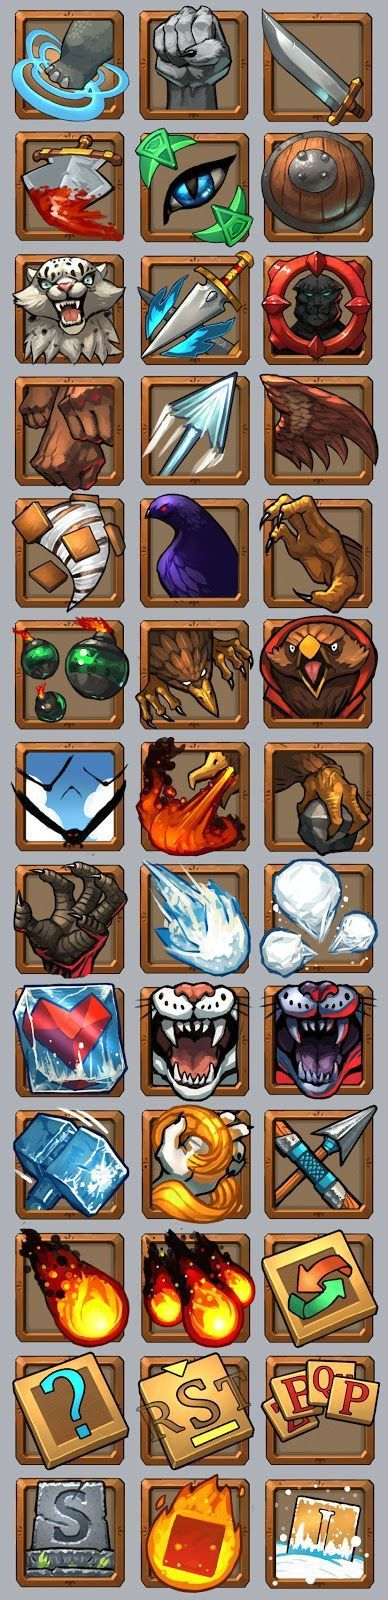 Icon_Game_Skill_FantasyRpg_Casual